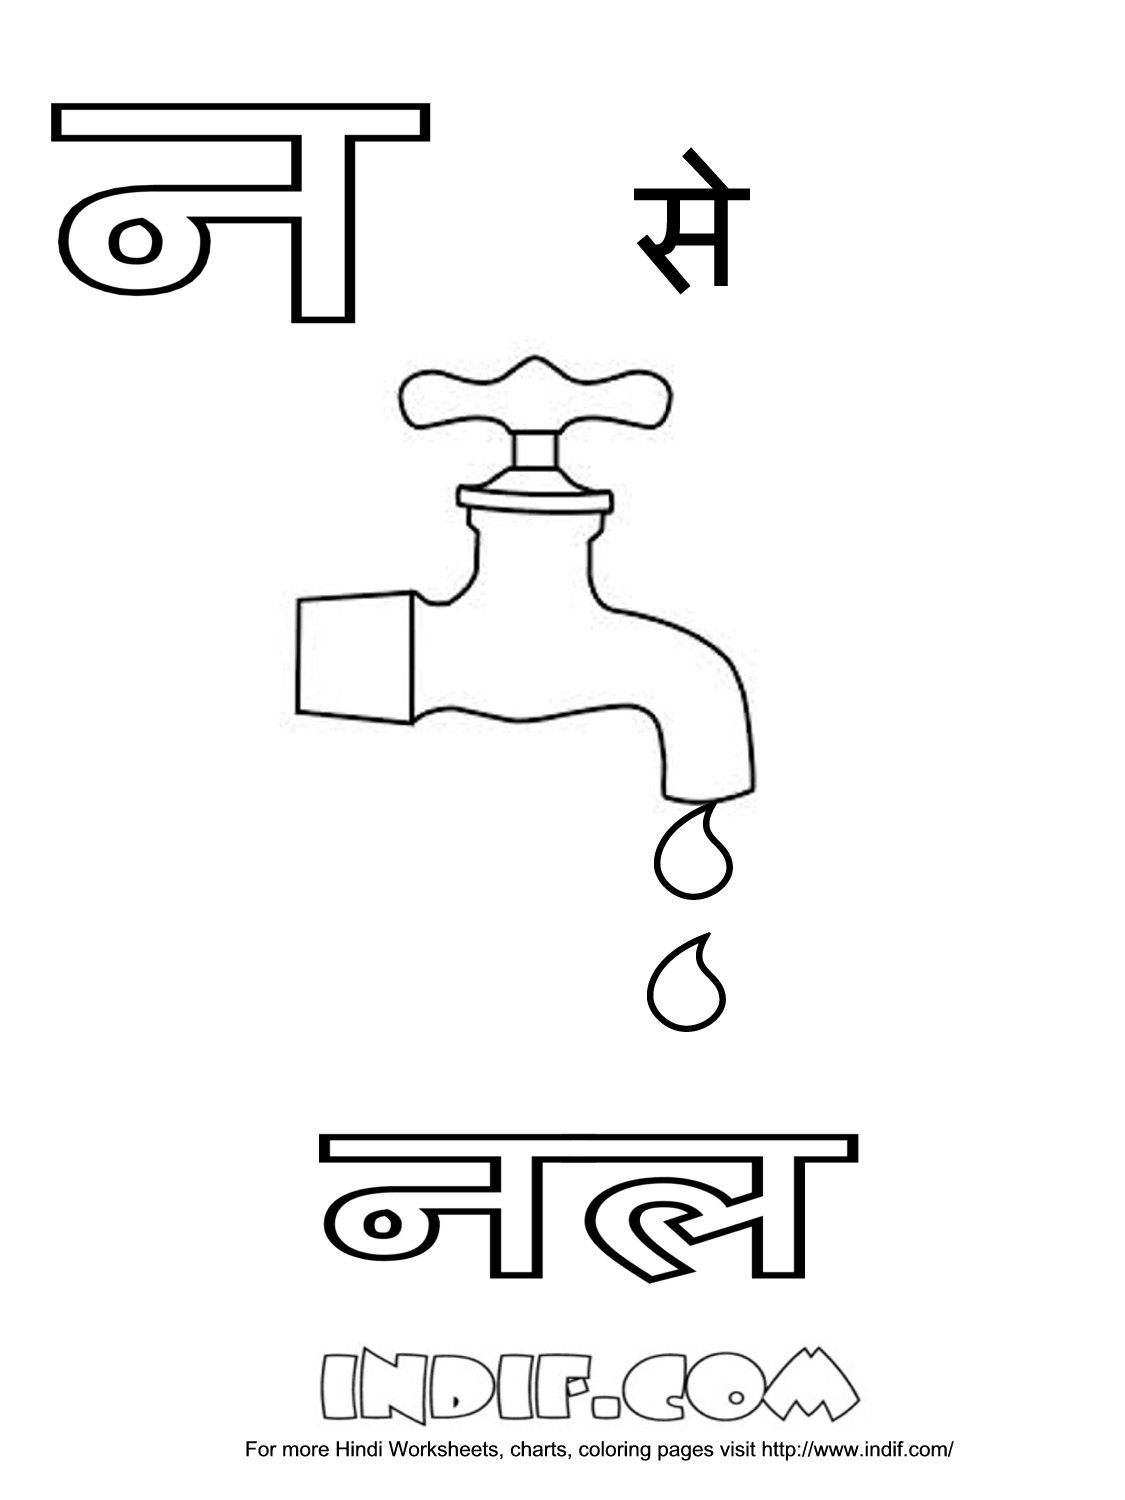 Alphabets Pictures For Colouring – With Letter Worksheets Also | Hindi Writing Worksheets Printable